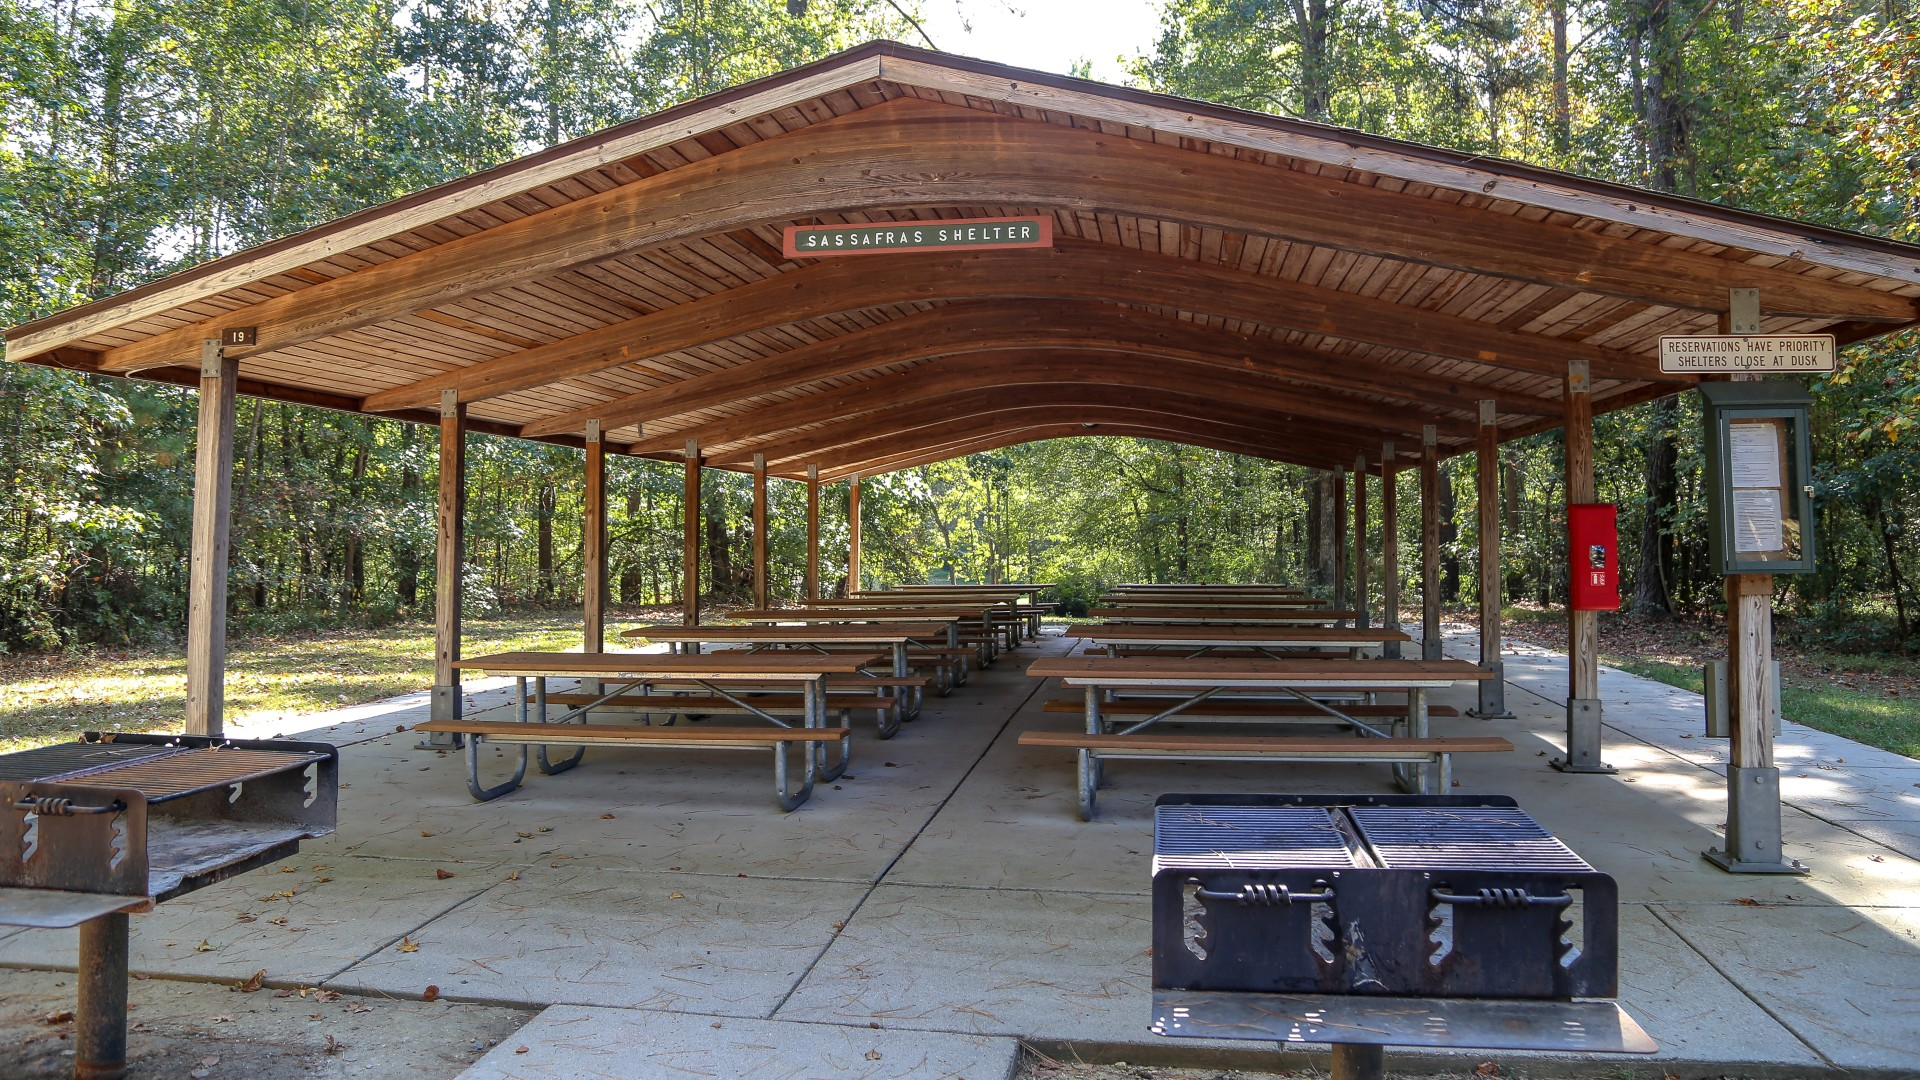 A large outdoor picnic shelter with grills